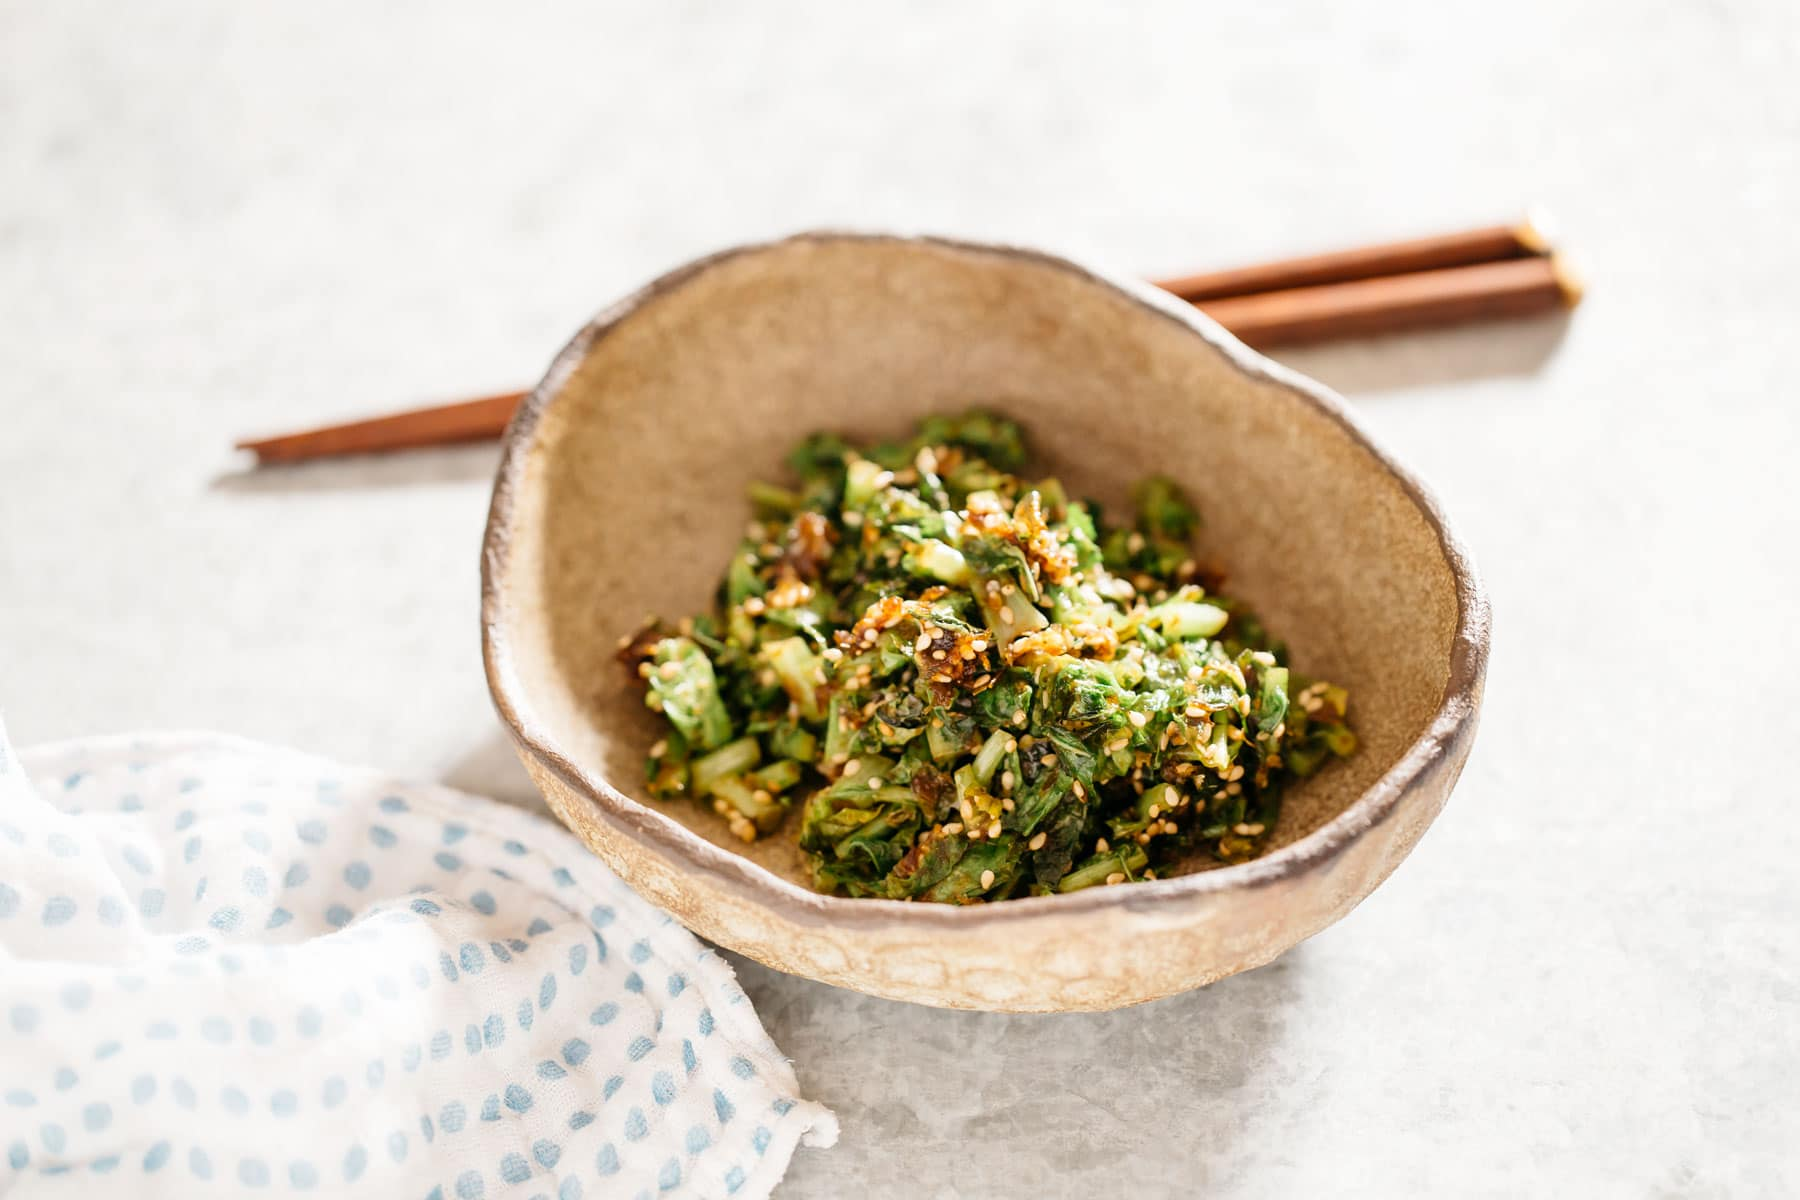 white radish leaves stir fry served in an oval bowl with a pair of chopstick